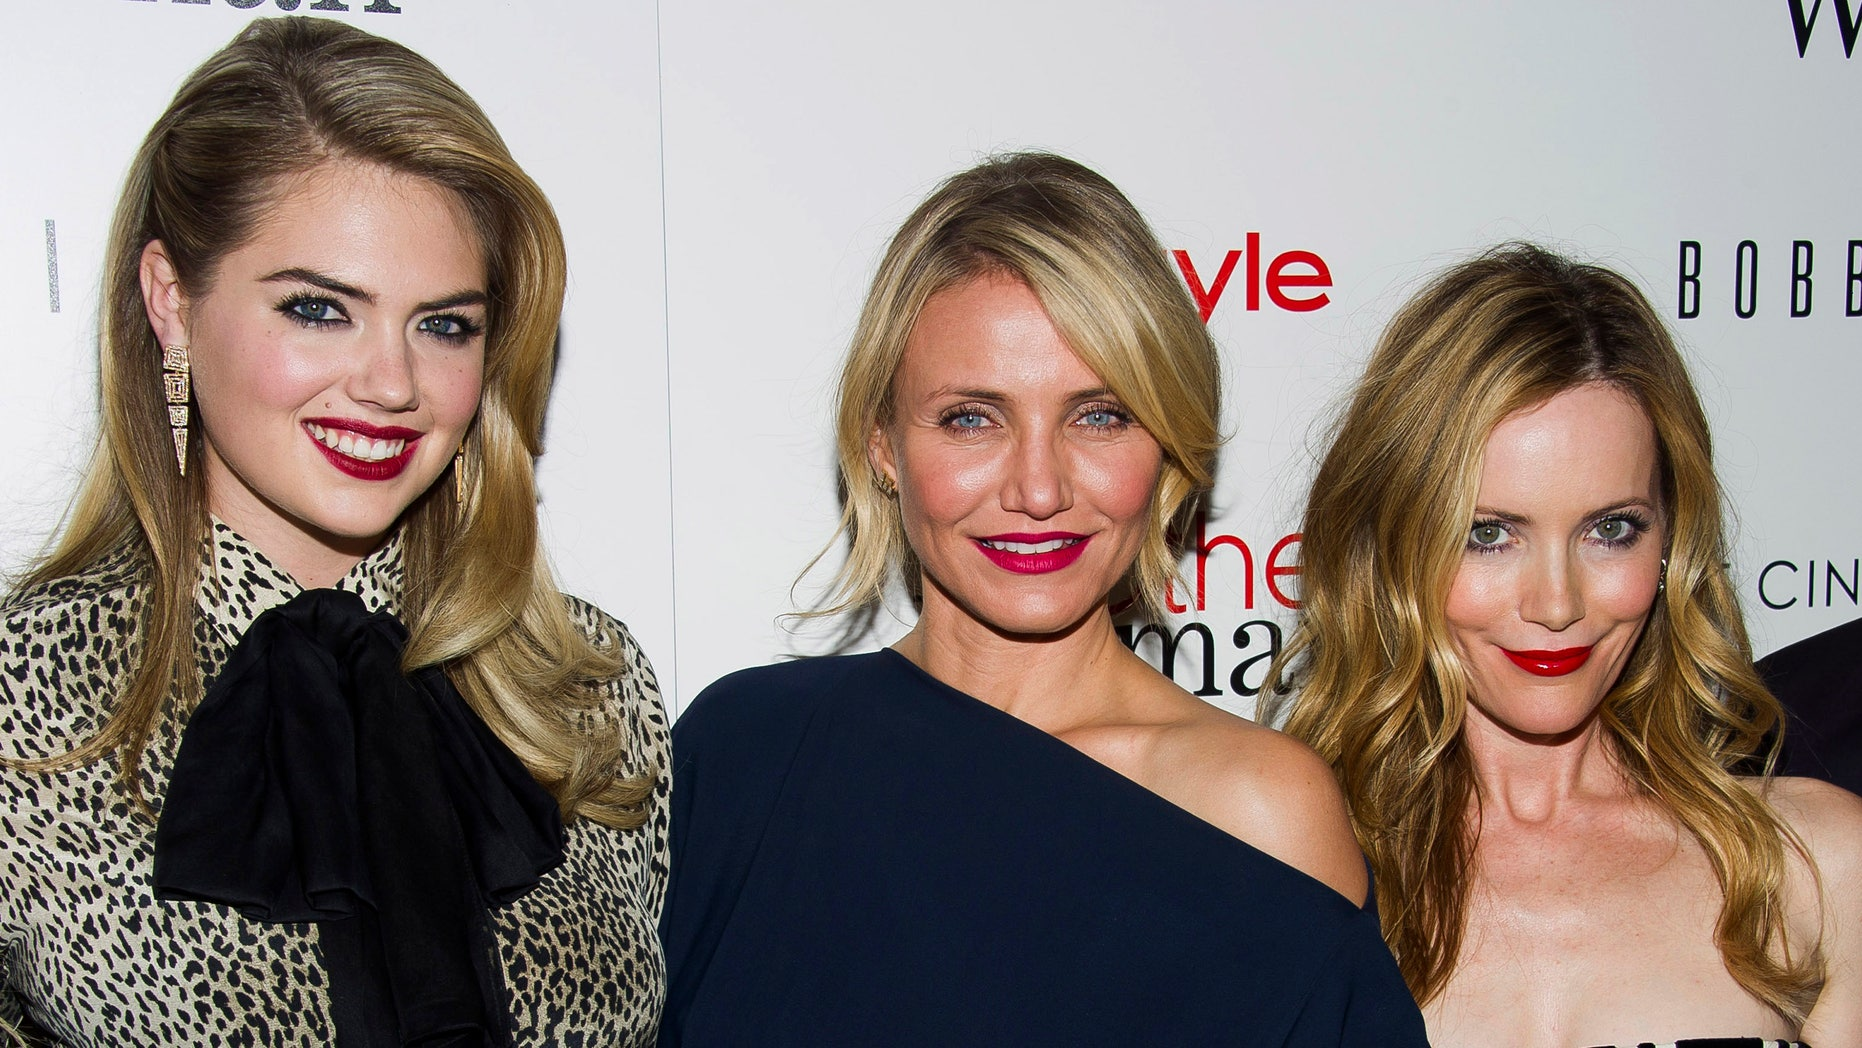 """April 24, 2014. Kate Upton, from left, Cameron Diaz and Leslie Mann attend the premiere of """"The Other Woman"""" hosted by The Cinema Society and Bobbi Brown in New York."""